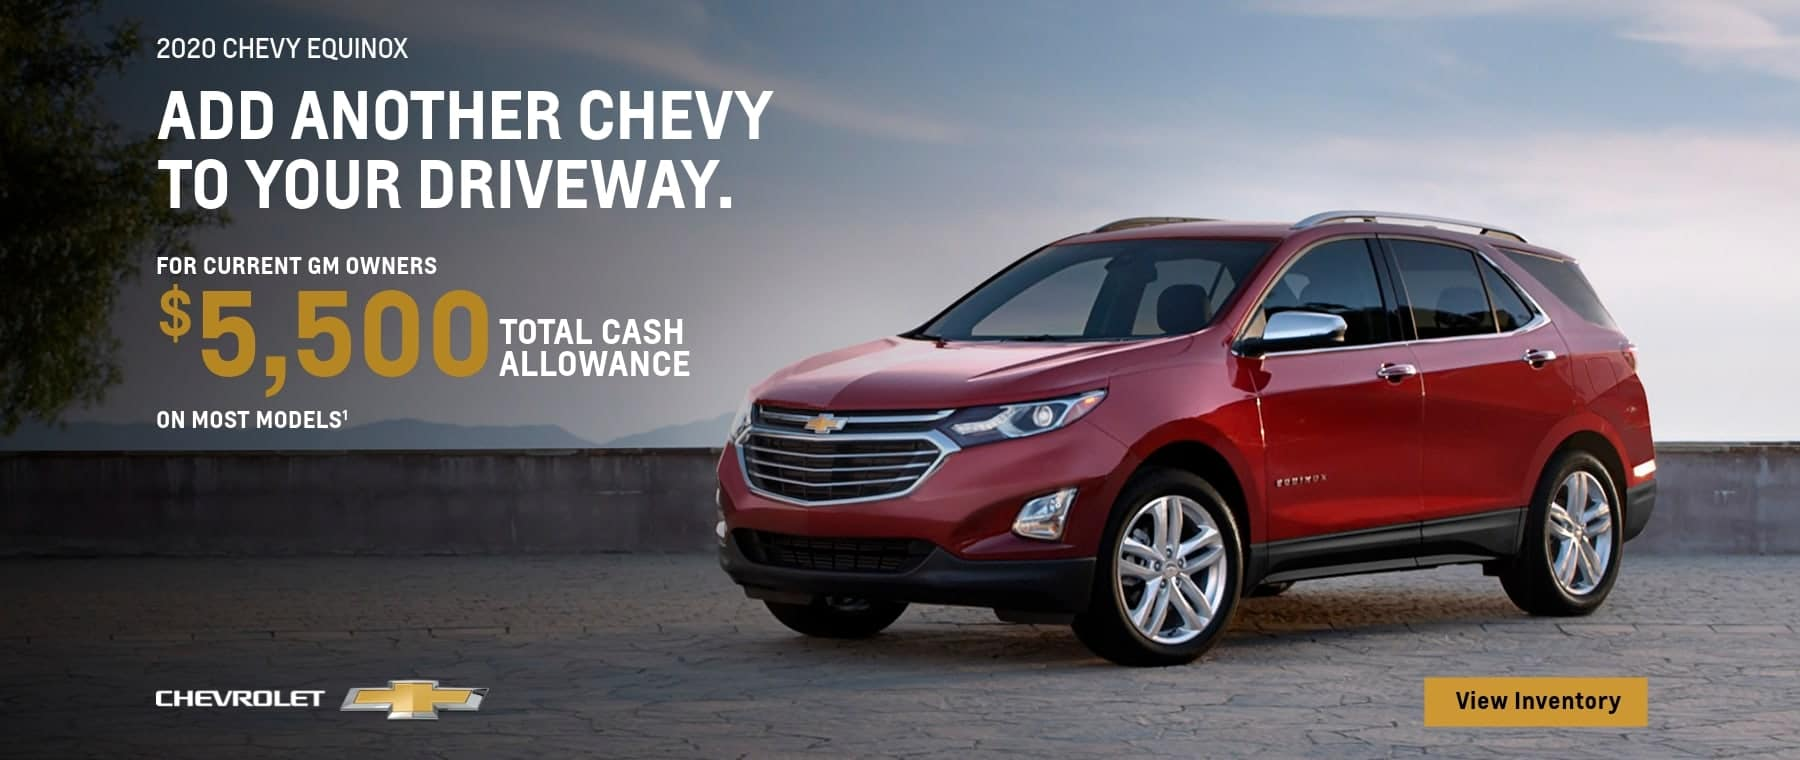 For current GM owners $5,500 total cash allowance on most models.